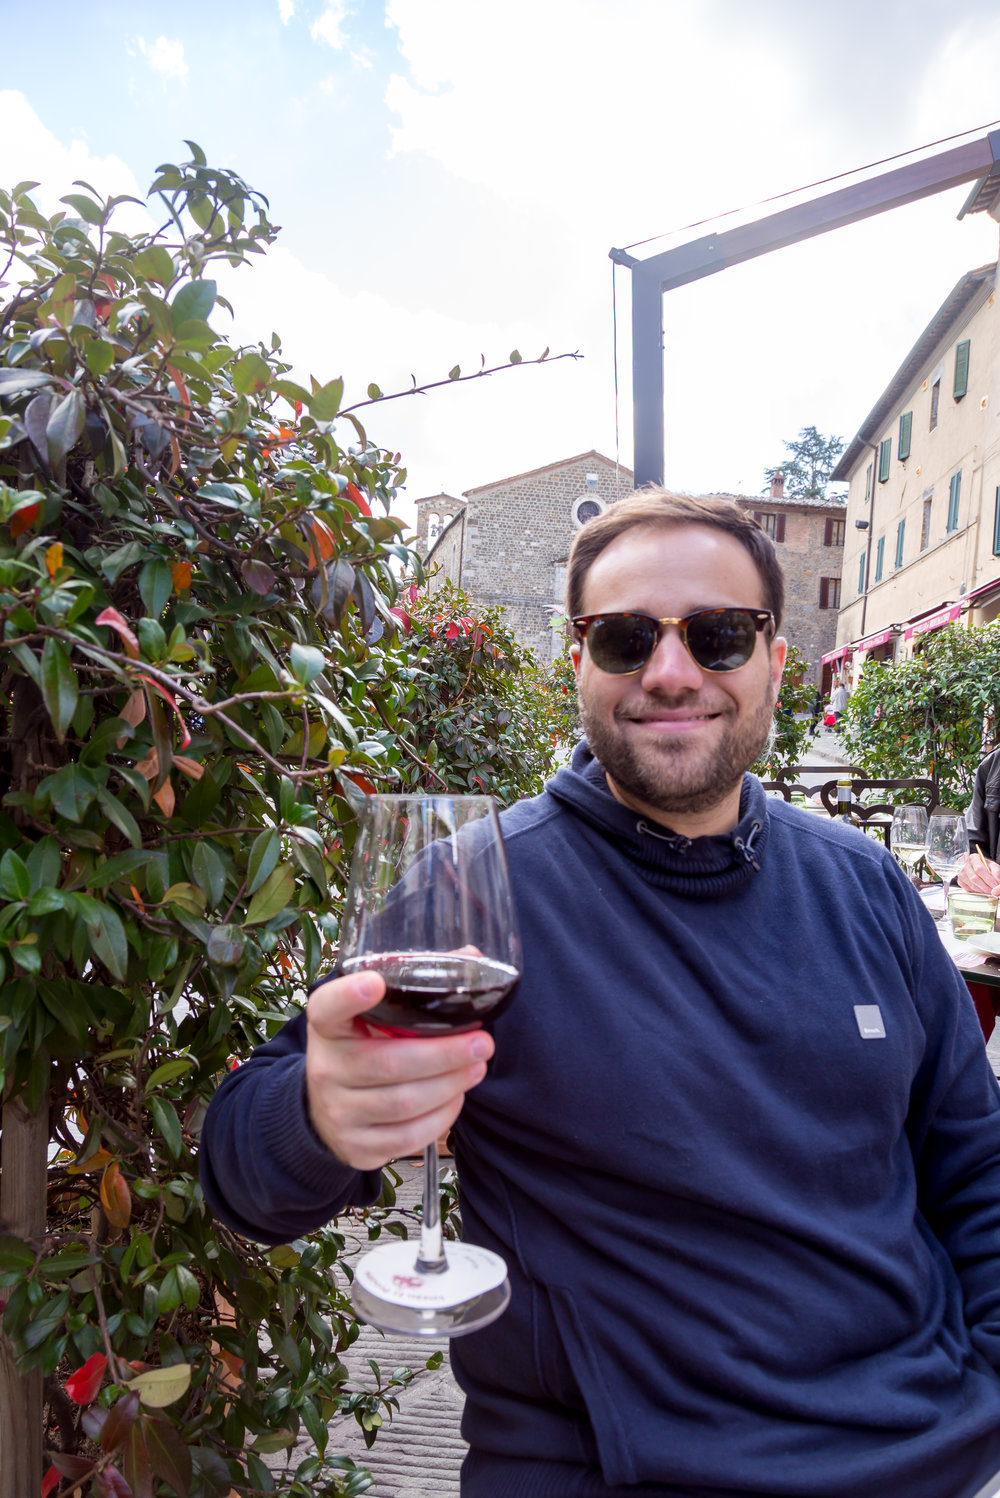 Stopped in Montalcino to try some Brunello wine, with yet another meat and cheese platter.